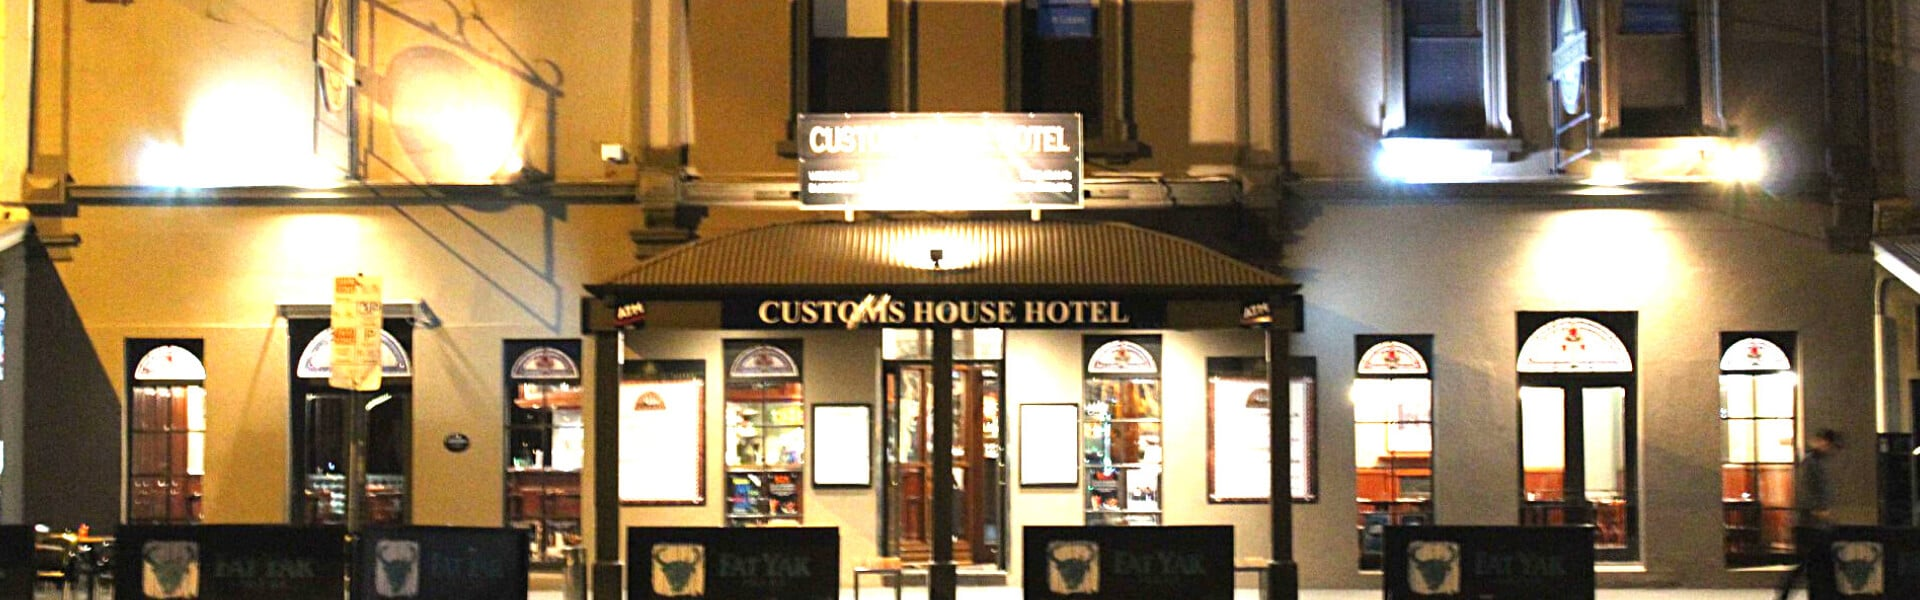 Outside Customs House Hotel evening